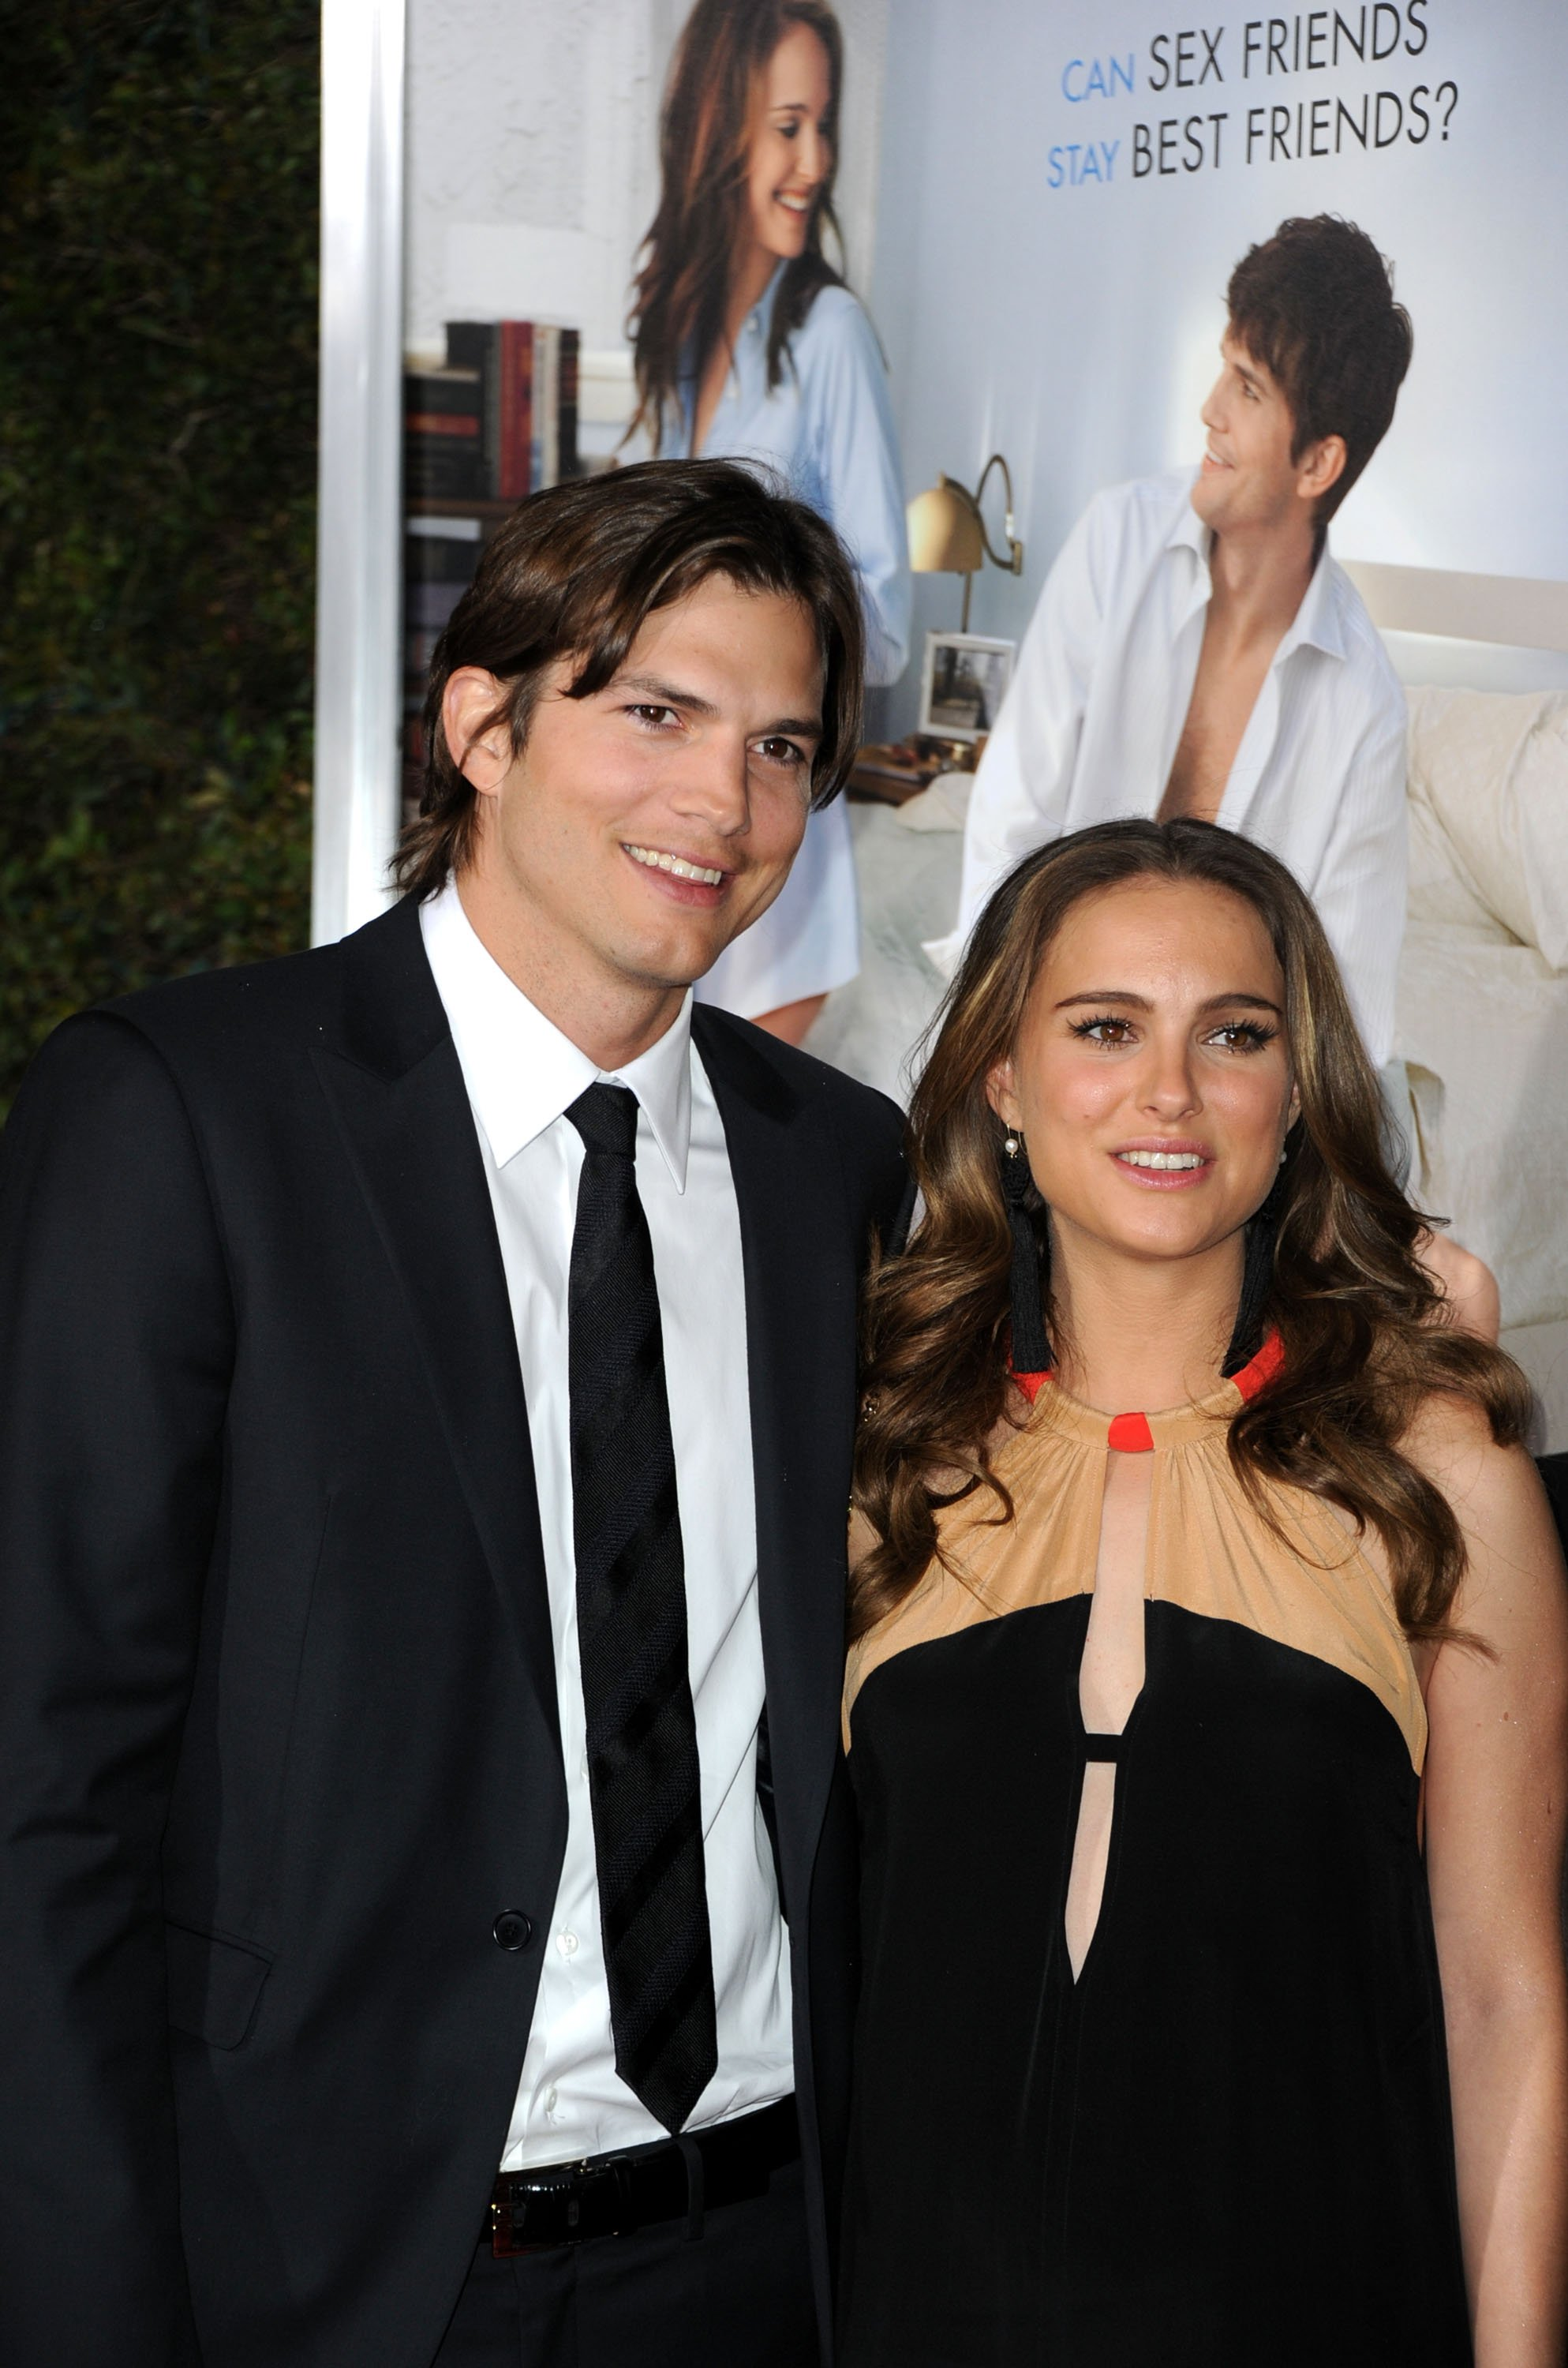 """Ashton Kutcher and Natalie Portman arrive at Paramount Pictures' """"No Strings Attached"""" premiere at Regency Village Theater in LA on January 11, 2011"""